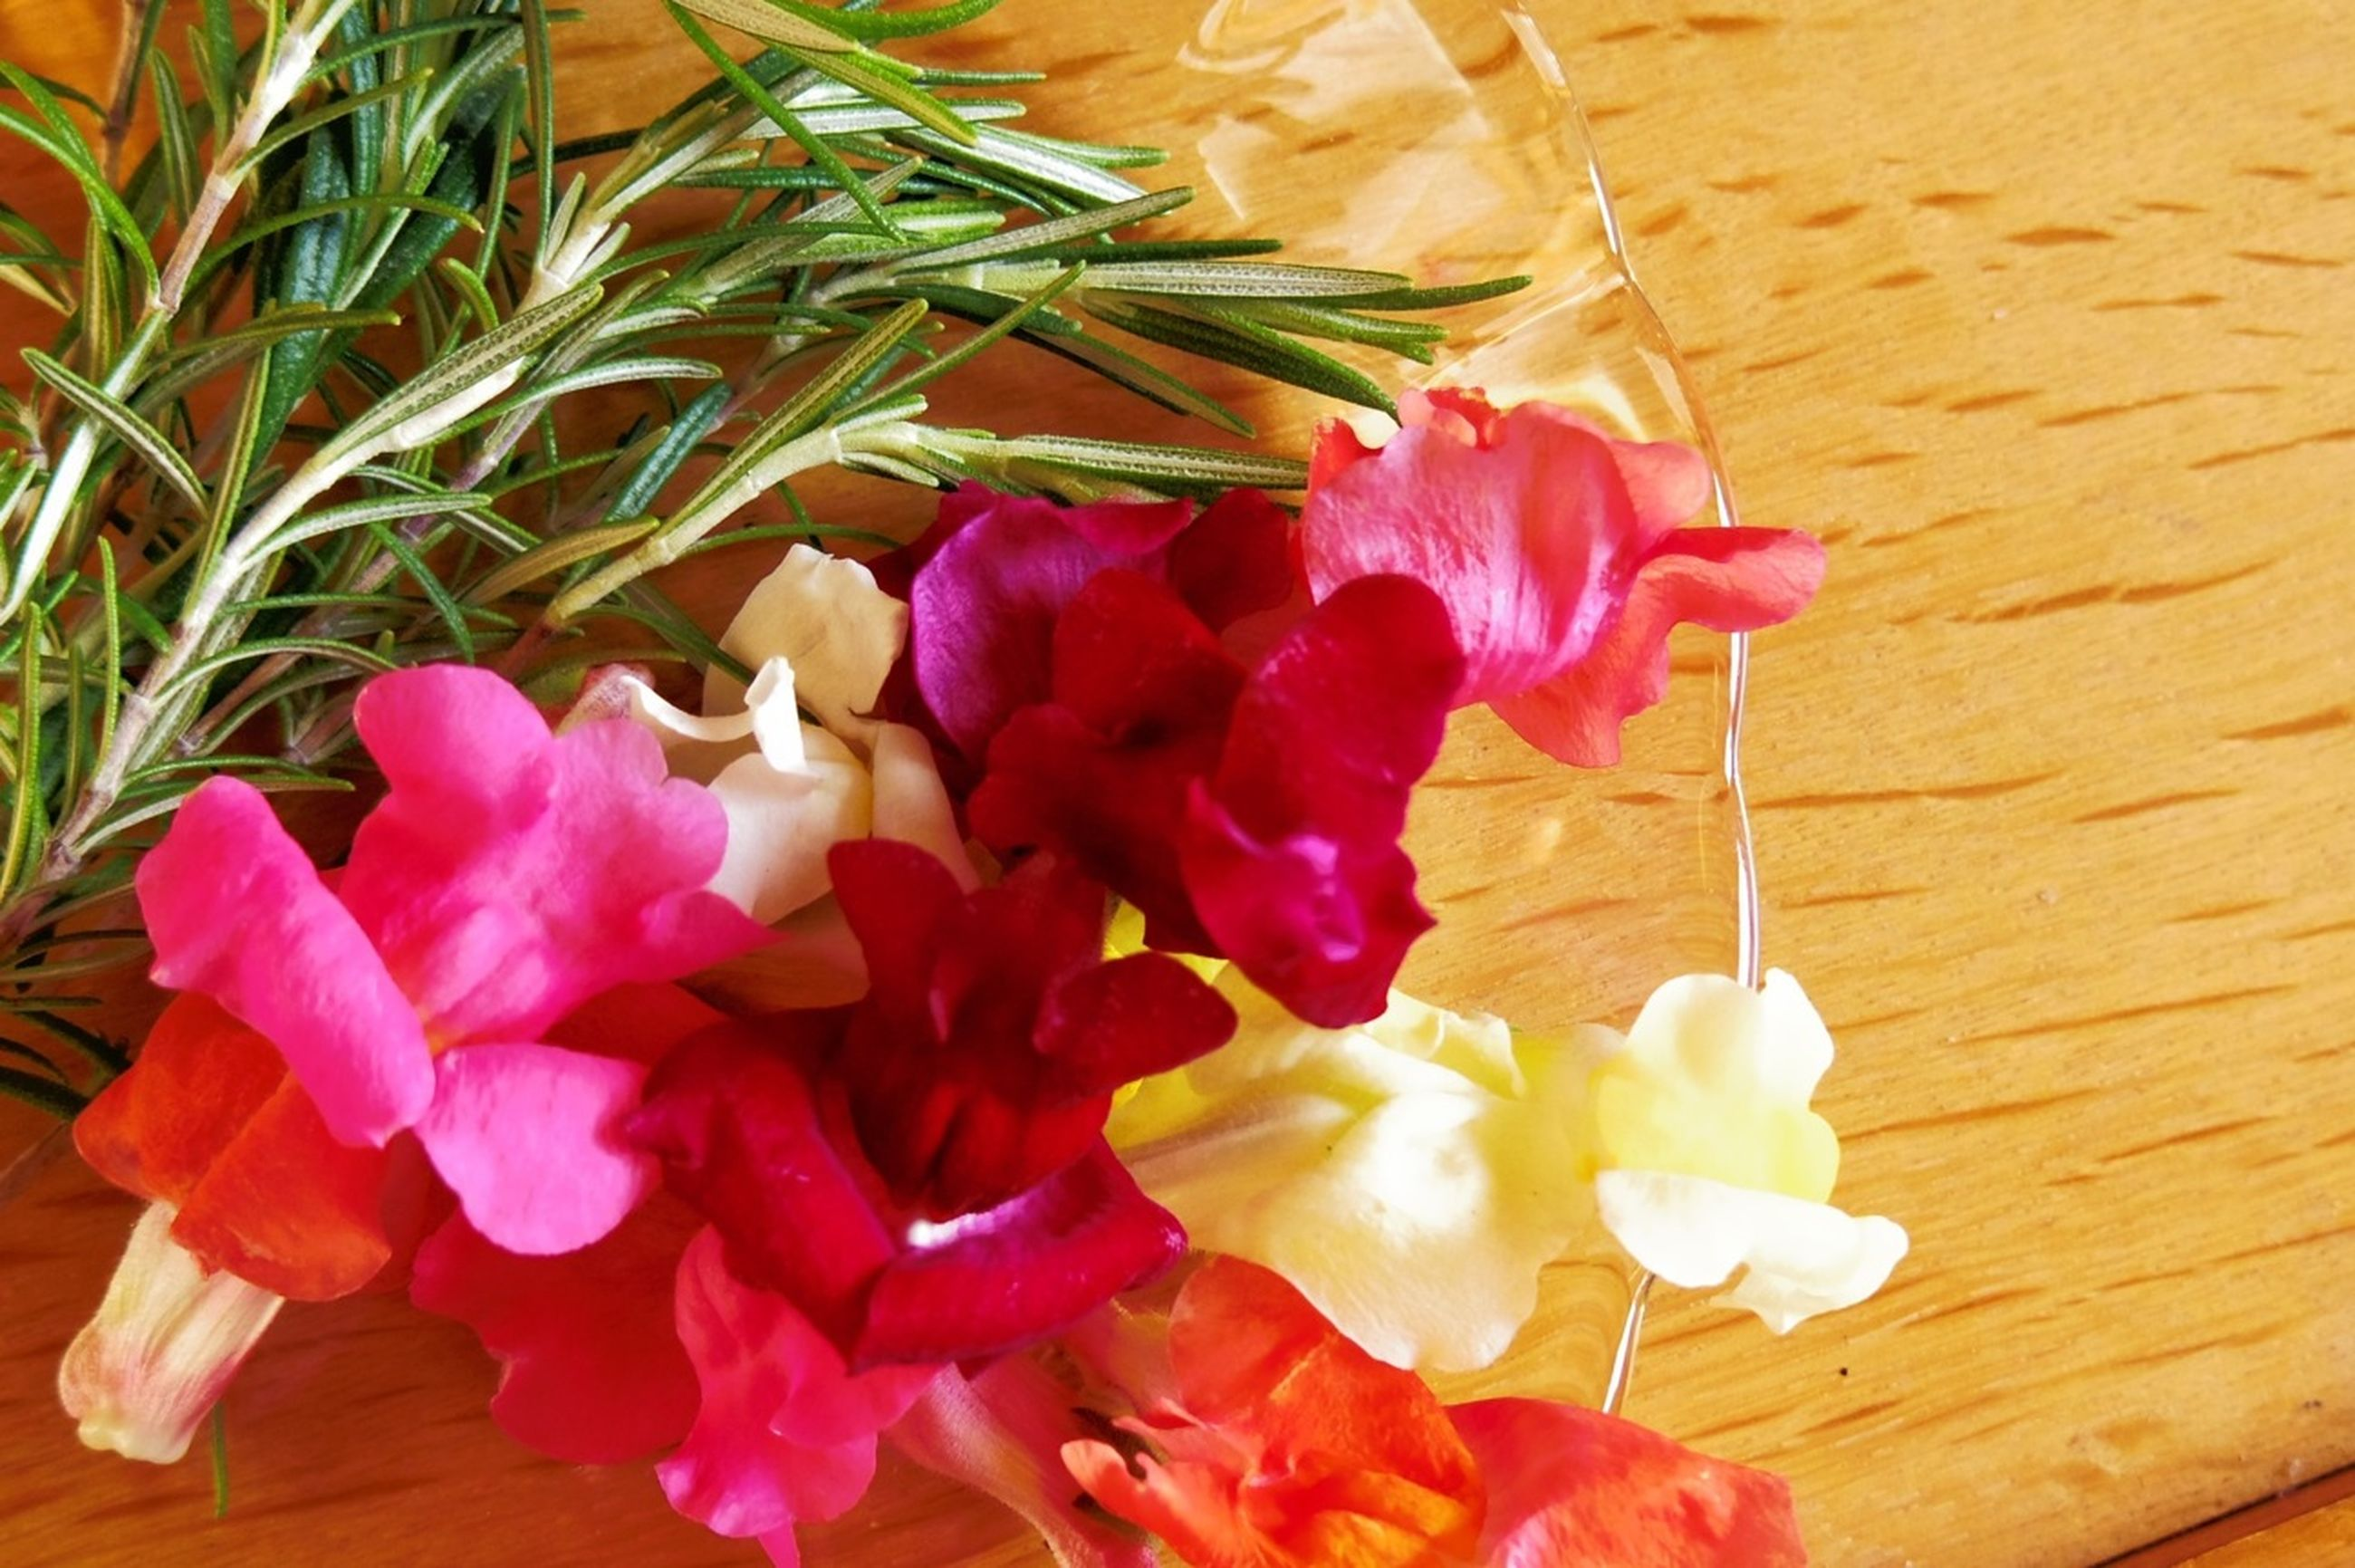 flower, petal, freshness, fragility, flower head, indoors, pink color, rose - flower, close-up, beauty in nature, tulip, stem, nature, vase, table, plant, high angle view, growth, still life, no people